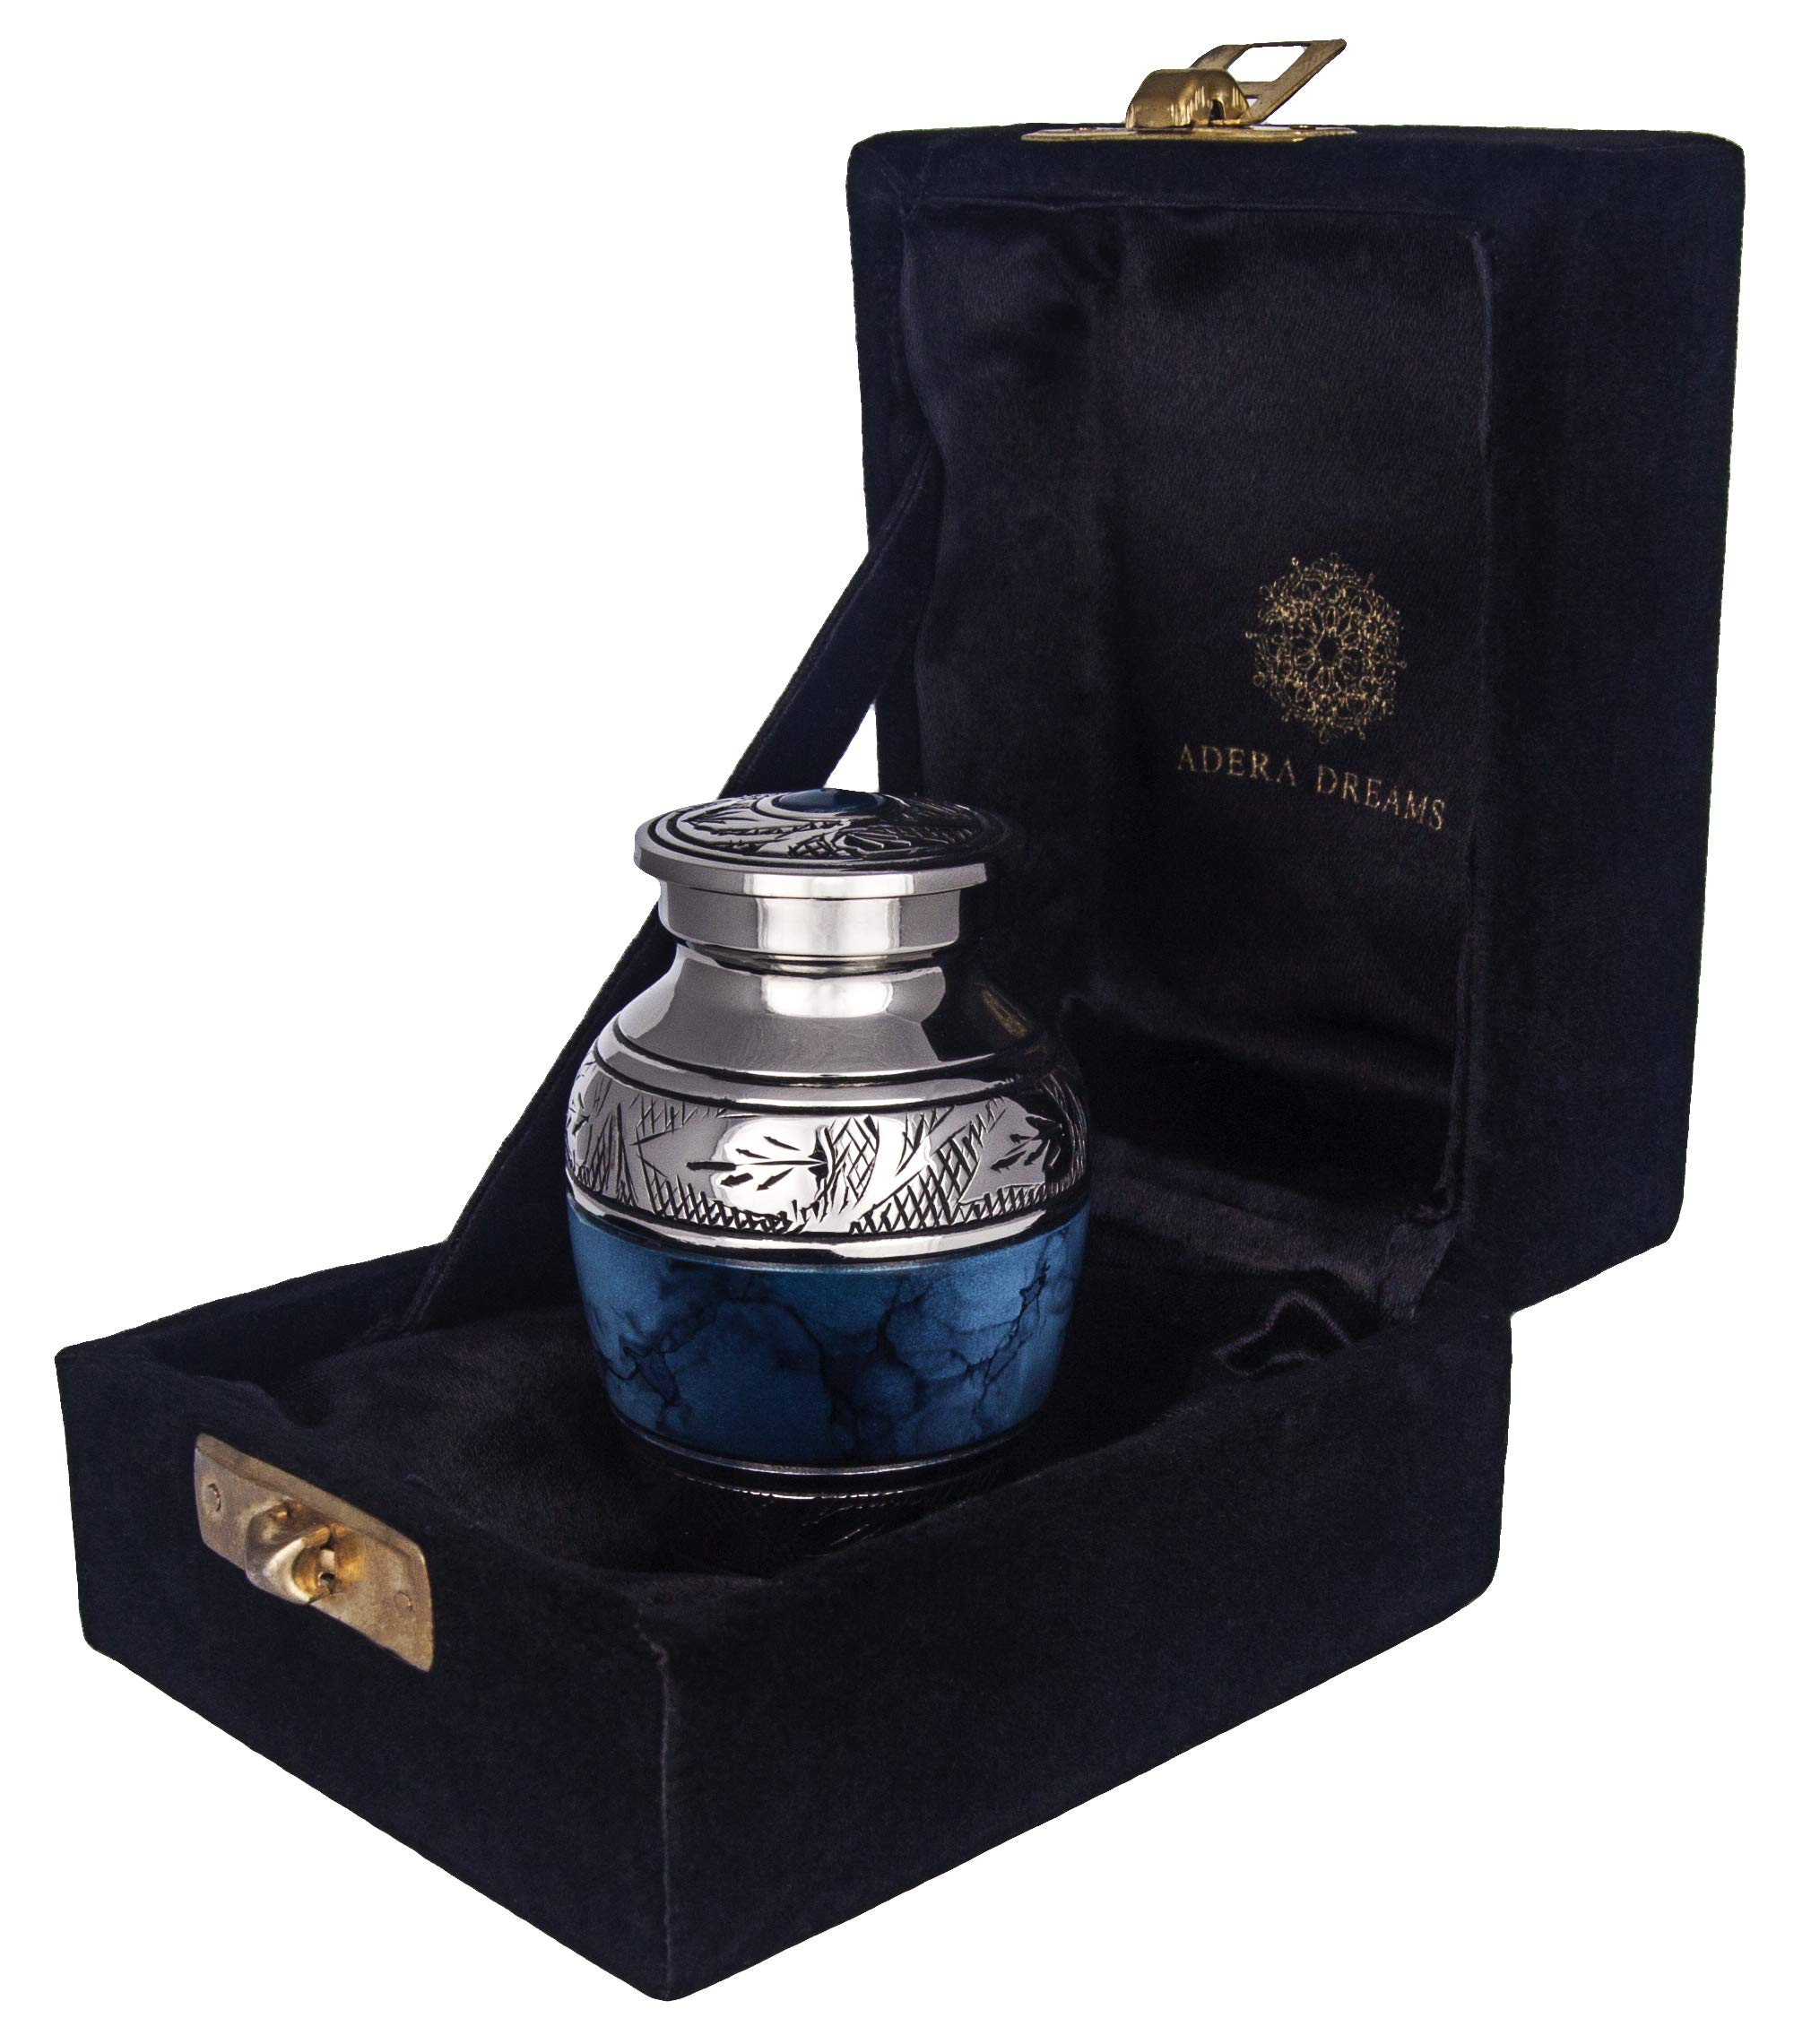 Small Cremation Urn for Human Ashes by Adera Dreams - Blue Clouds Mini Keepsake Urn - with Premium Case, Funnel and Velvet Carrying Pouch - Miniature Memorial Funeral Urn for Sharing Ashes